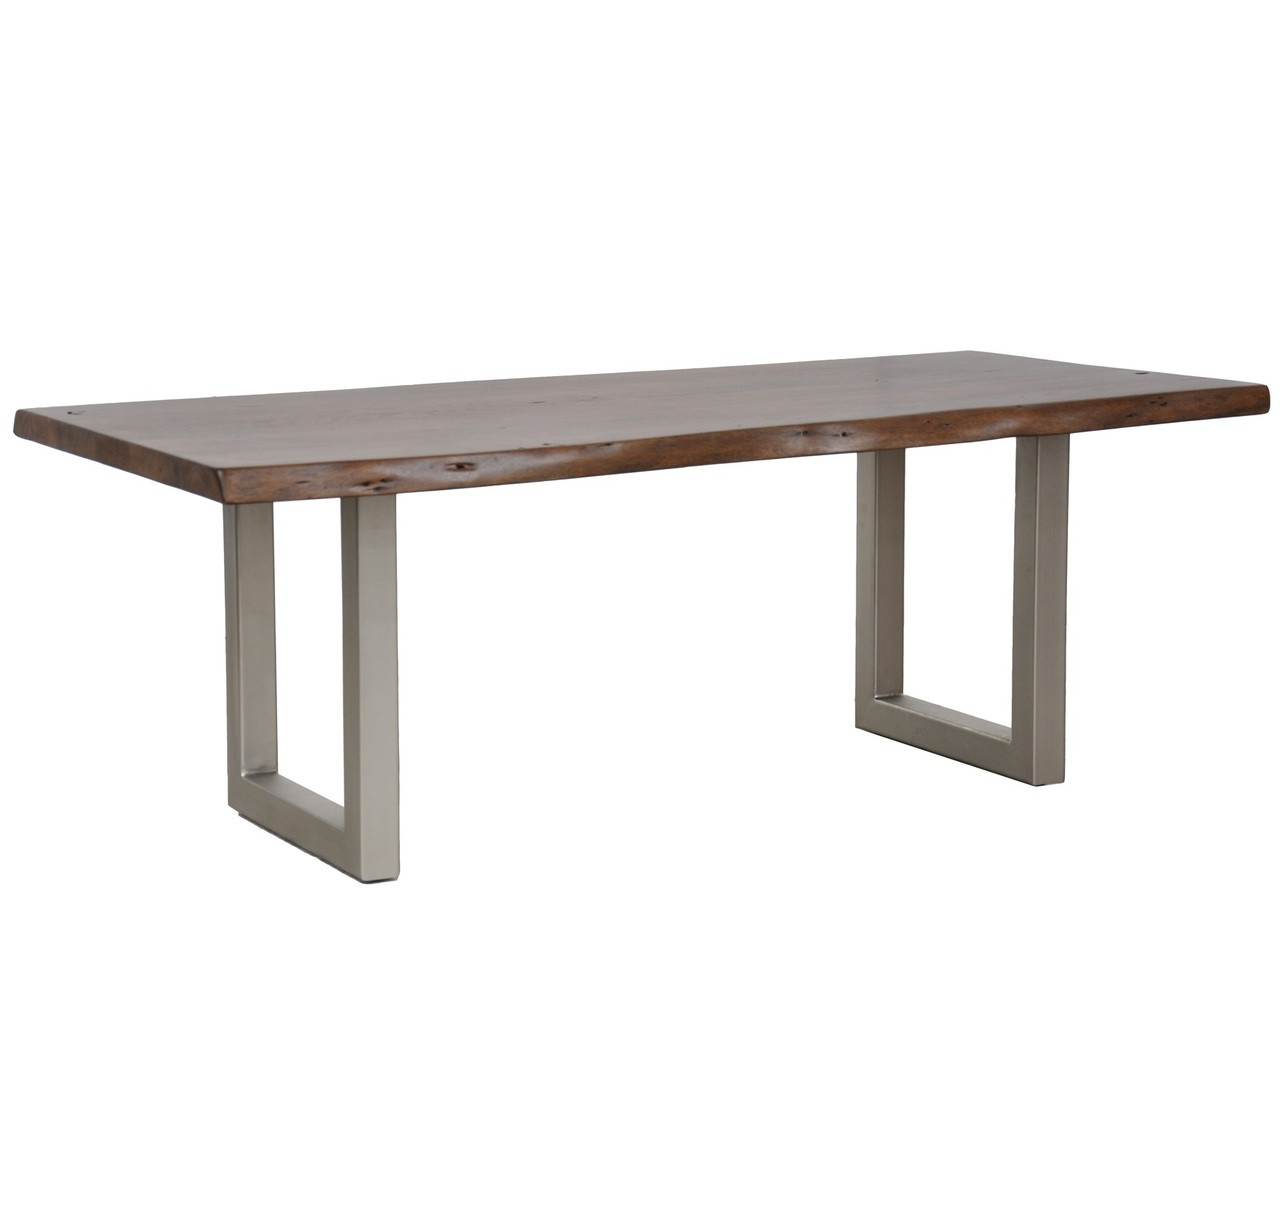 Montana Solid Wood Metal Leg Dining Table 94quot Zin Home : MontanaSolidWoodMetalLegDiningTable82646501415080598 from www.zinhome.com size 1280 x 1215 jpeg 61kB